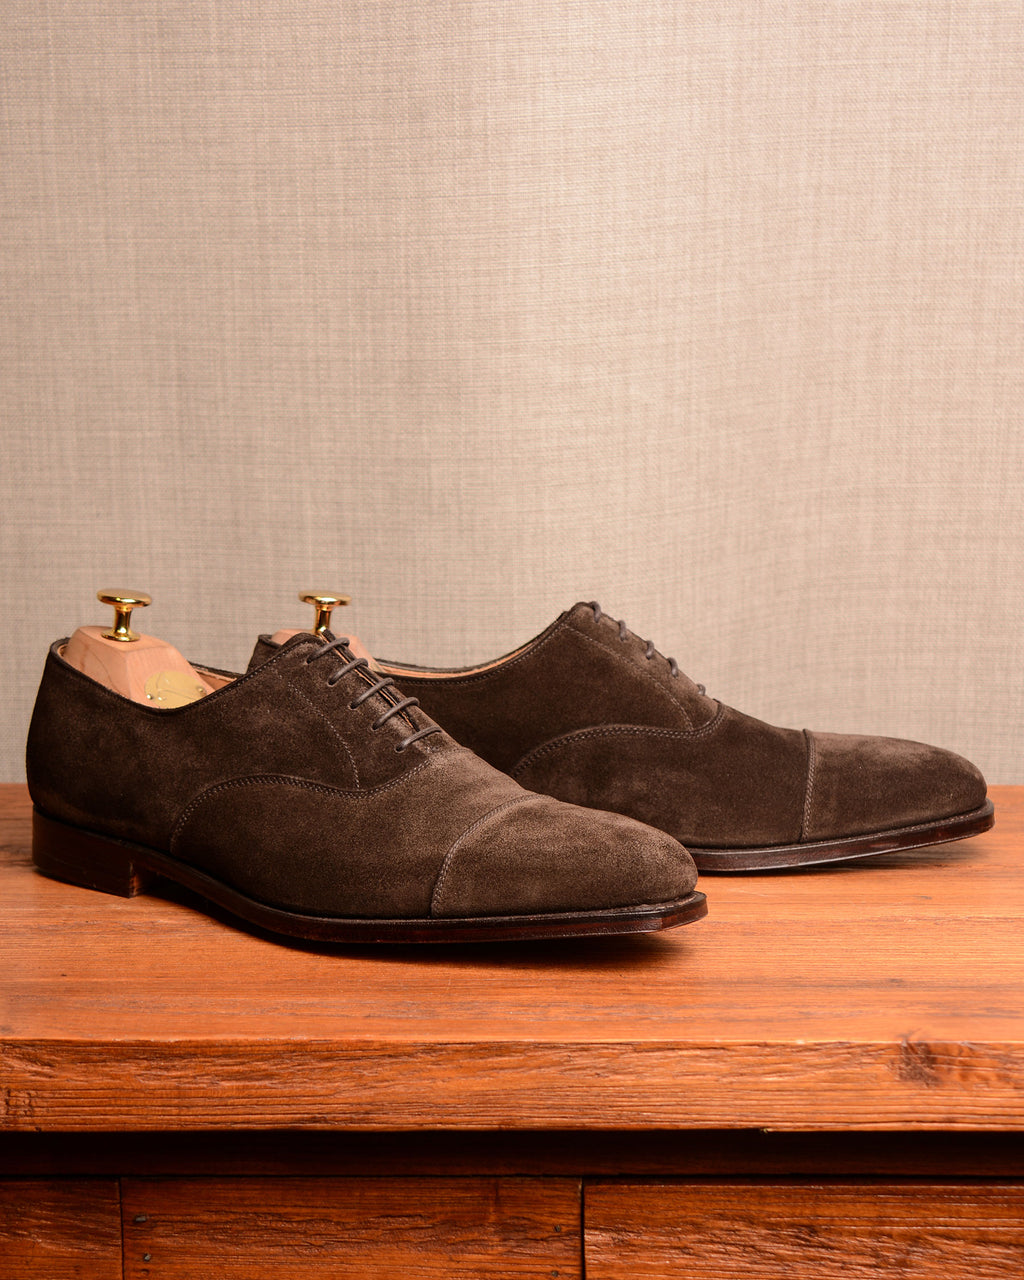 Crockett & Jones Hallam - Espresso Suede